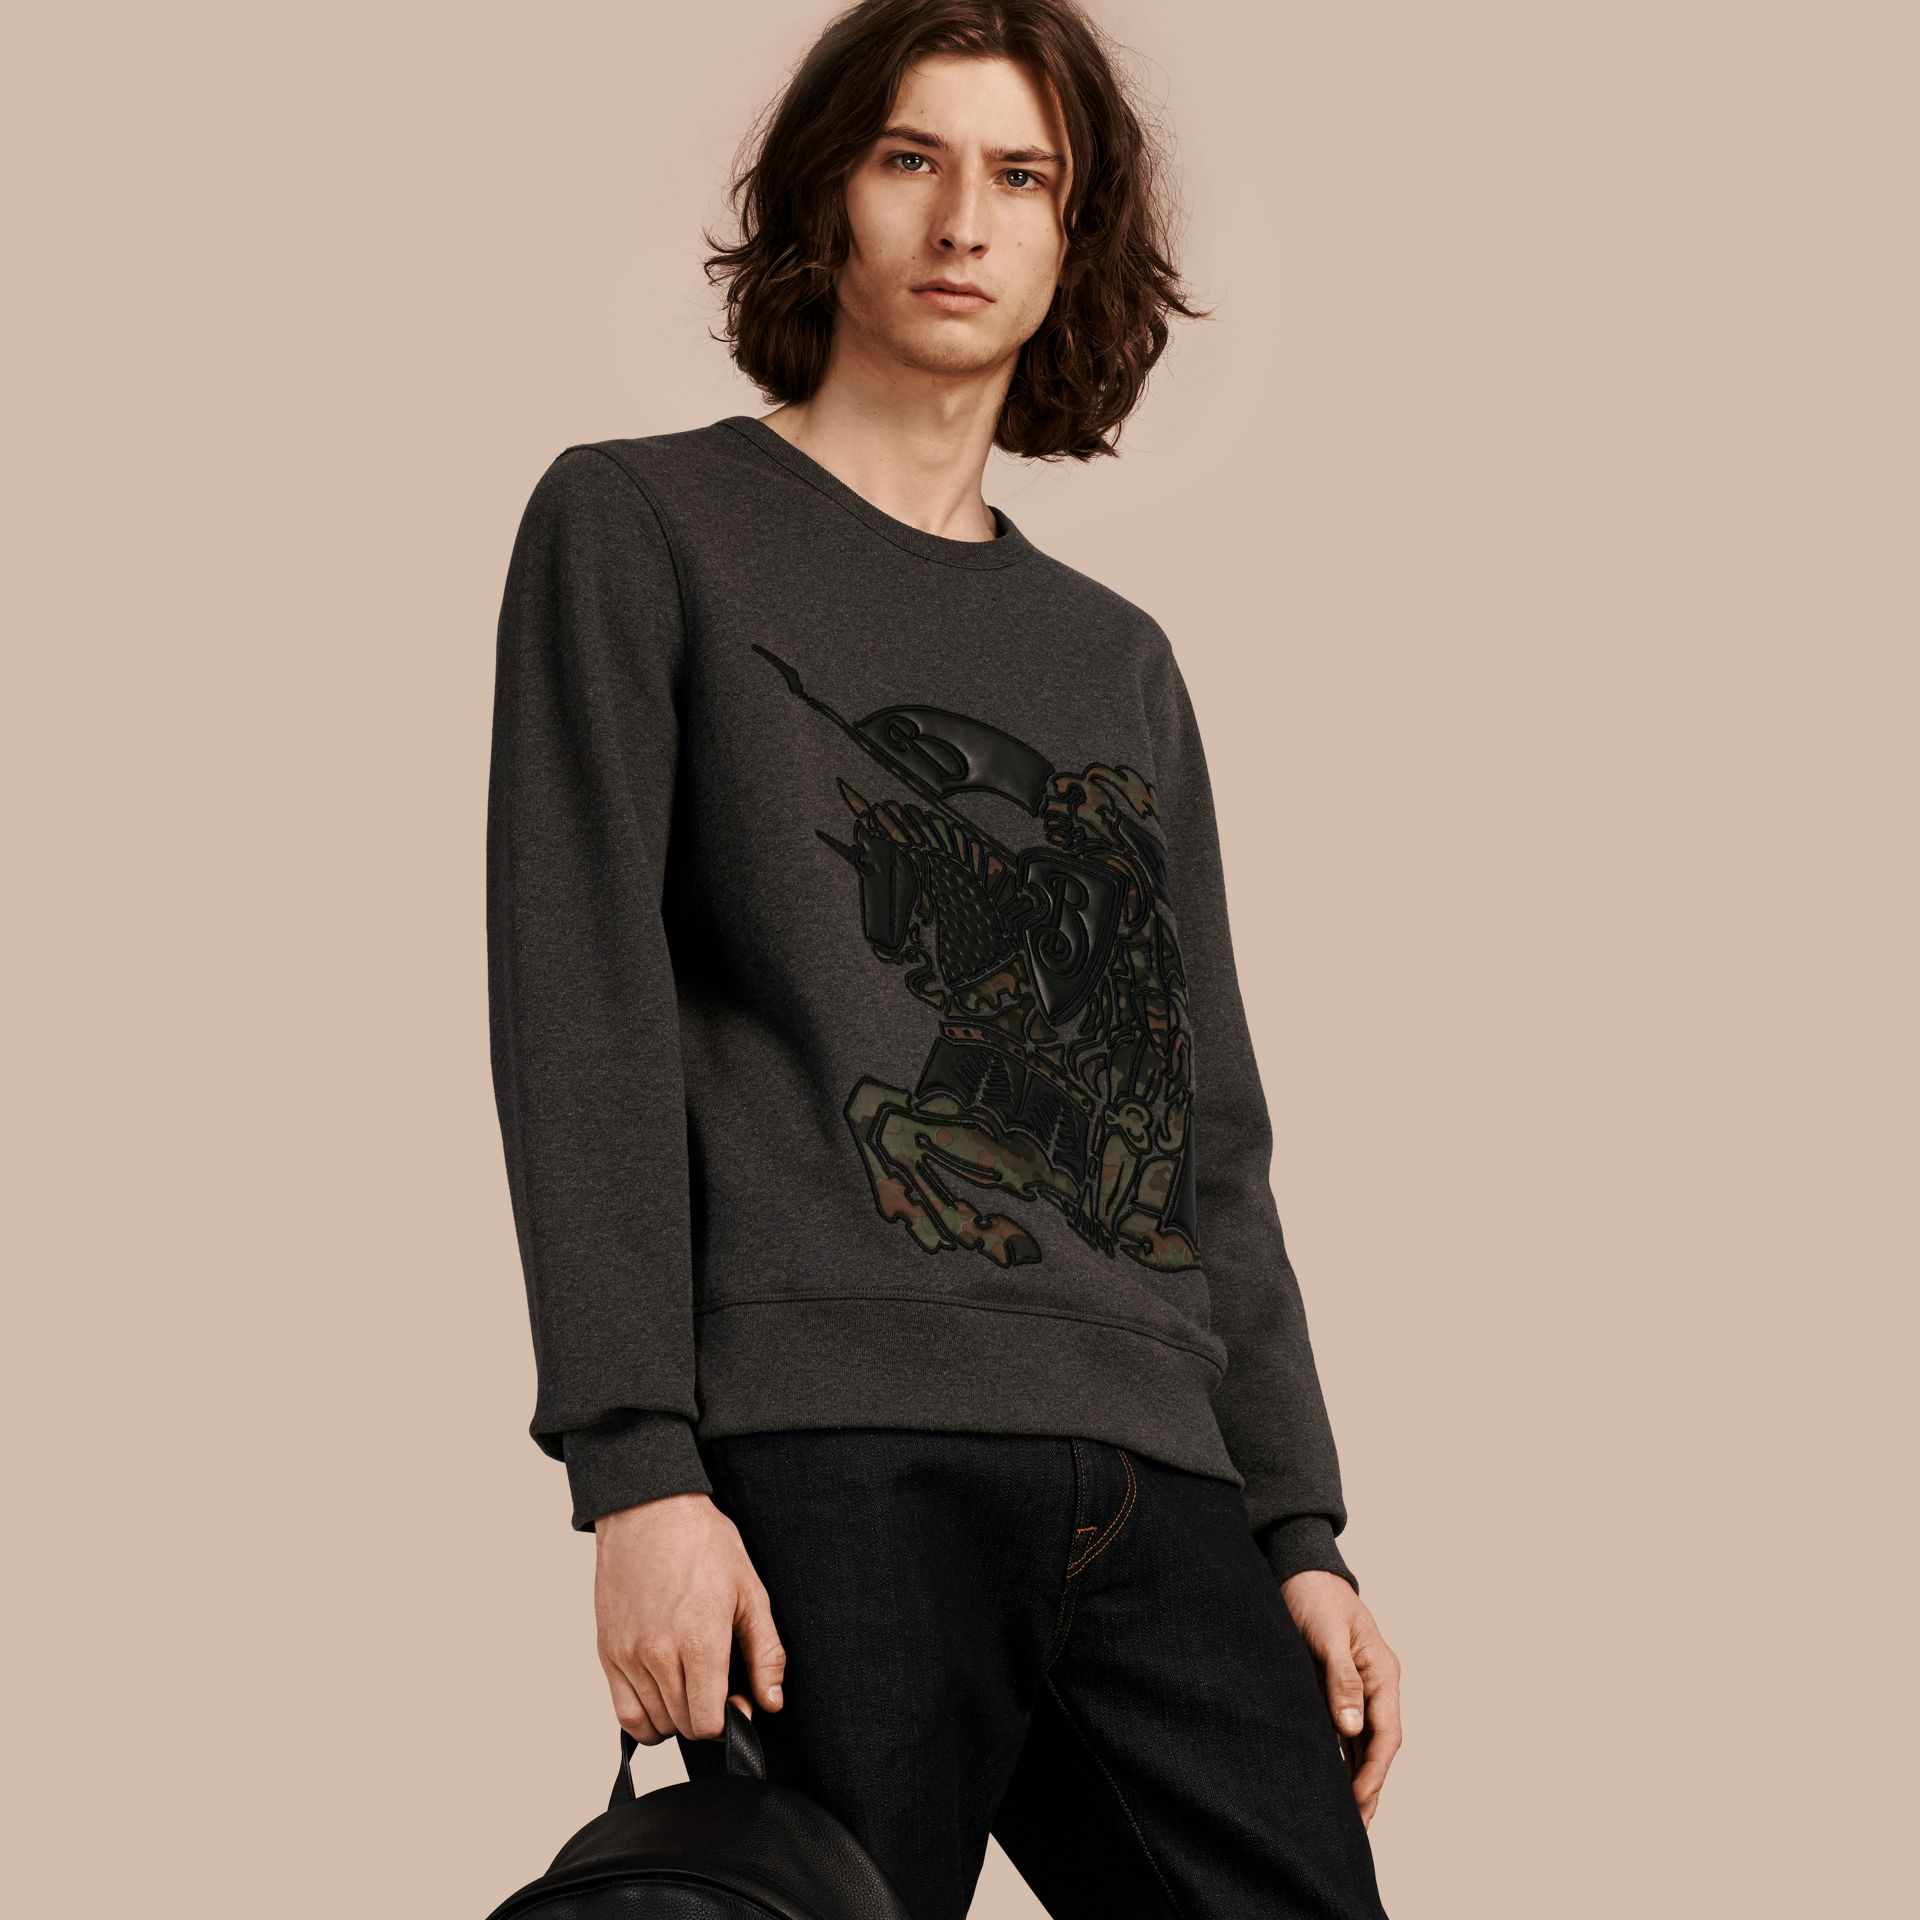 Charcoal melange Equestrian Knight Device Cotton and Lambskin Sweatshirt - gallery image 1